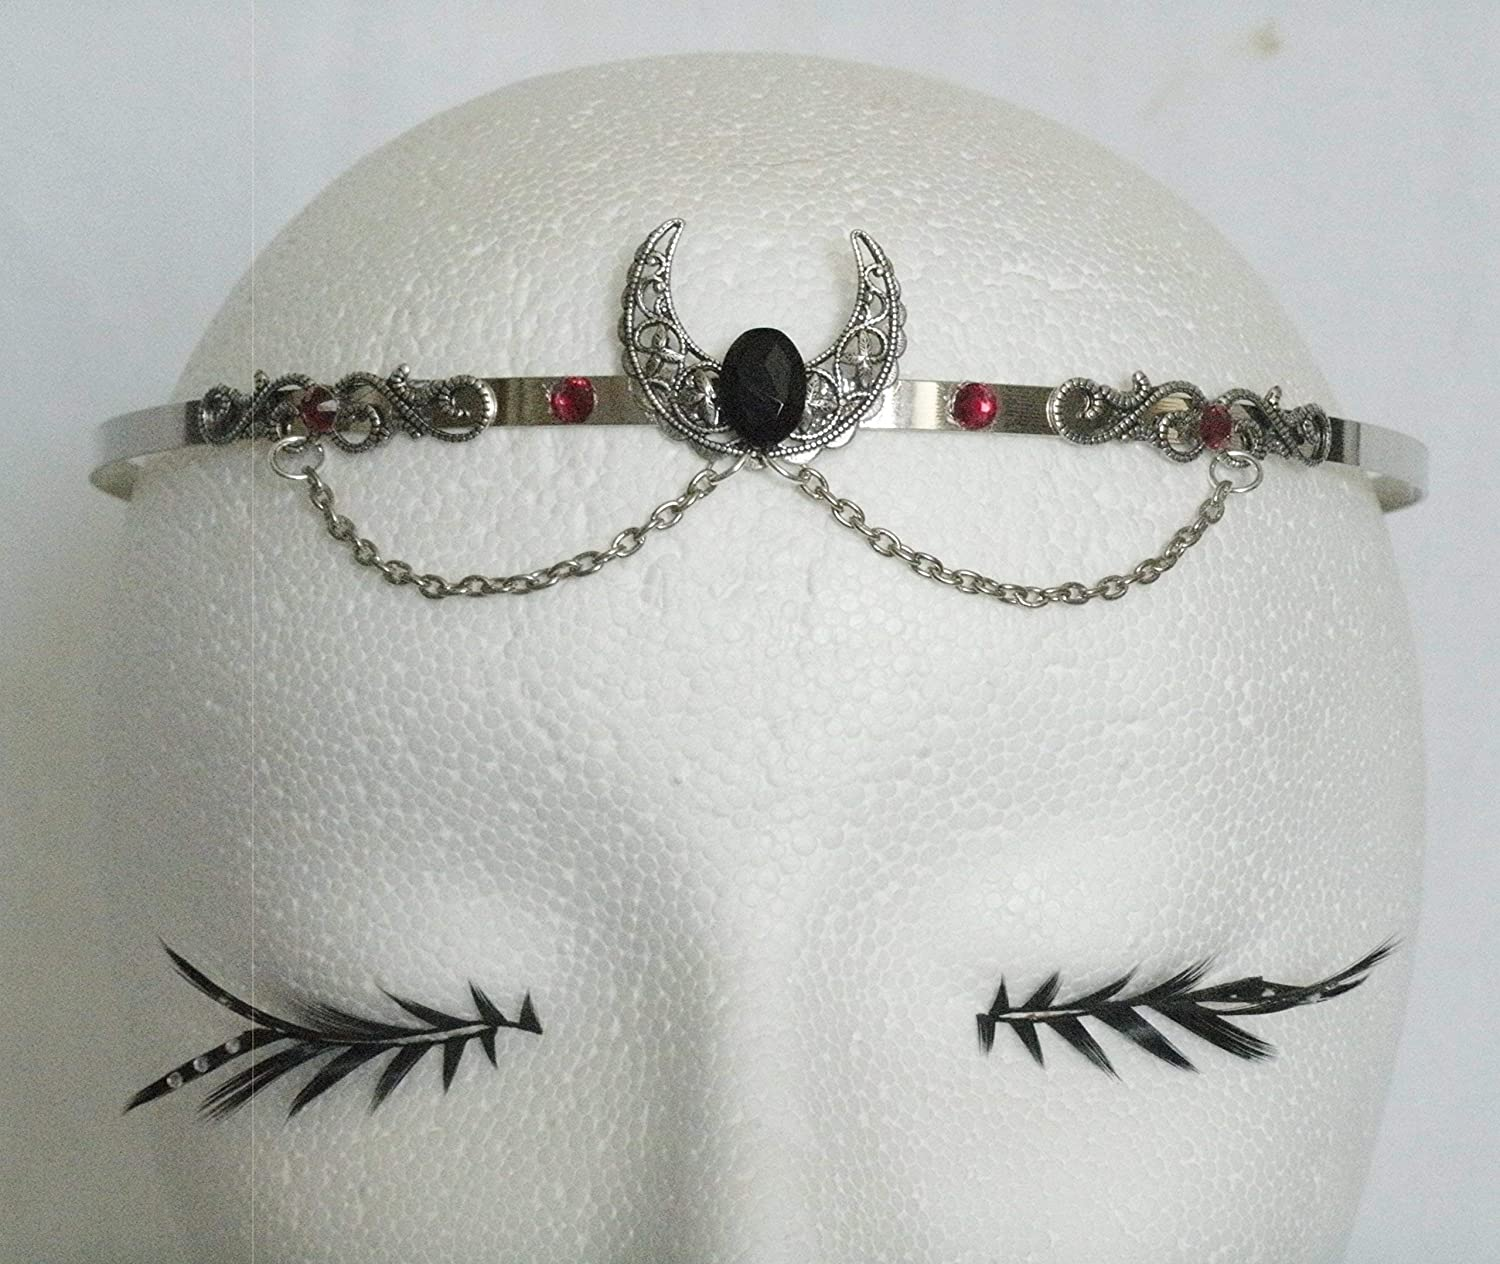 Onyx Crescent Moon Circlet handmade jewelry wiccan pagan wicca goddess witch witchcraft headpiece